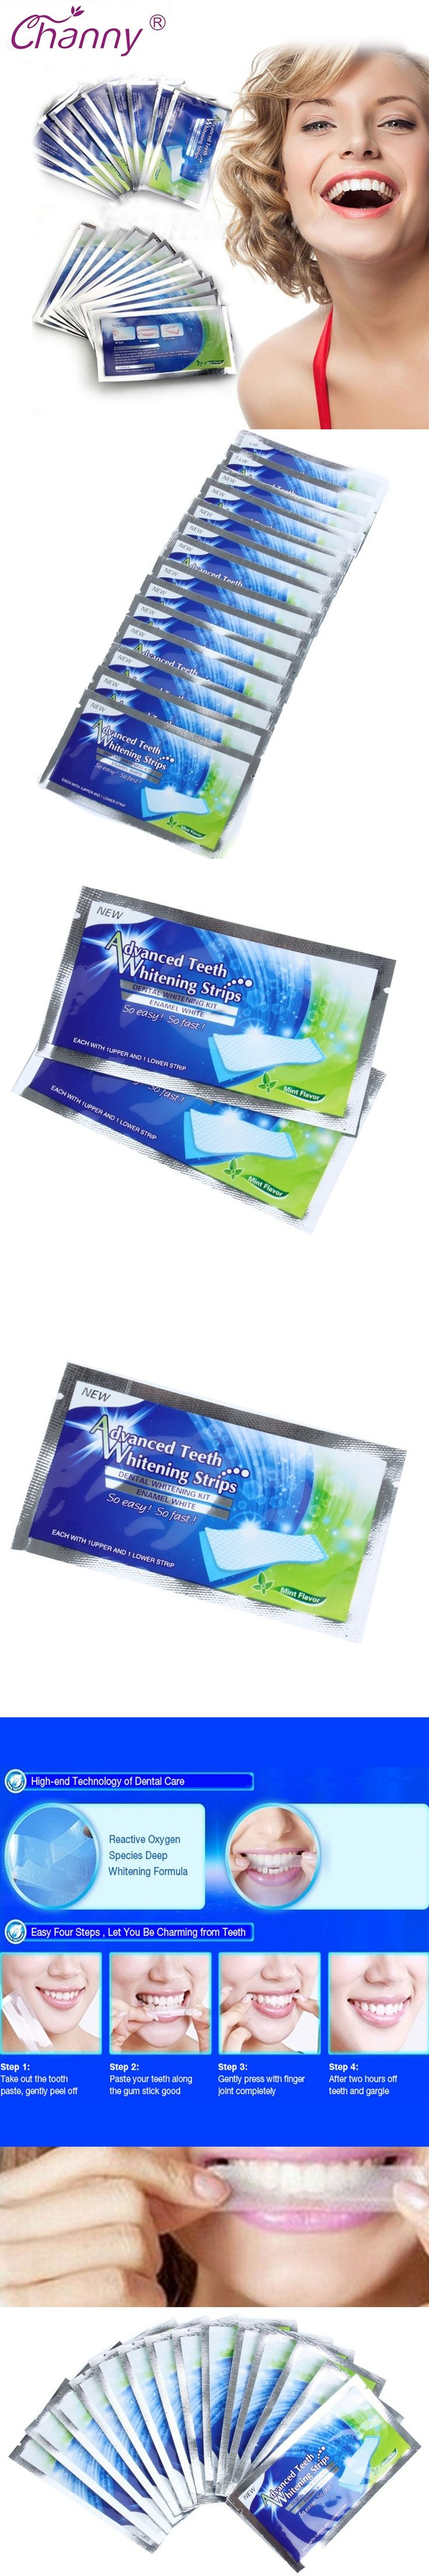 28 Pcs/Lot Teeth Whitening Strips Gel Care Oral Hygiene Clareador Dental Bleaching Tooth Whitening Bleach Teeth Whiten Tools